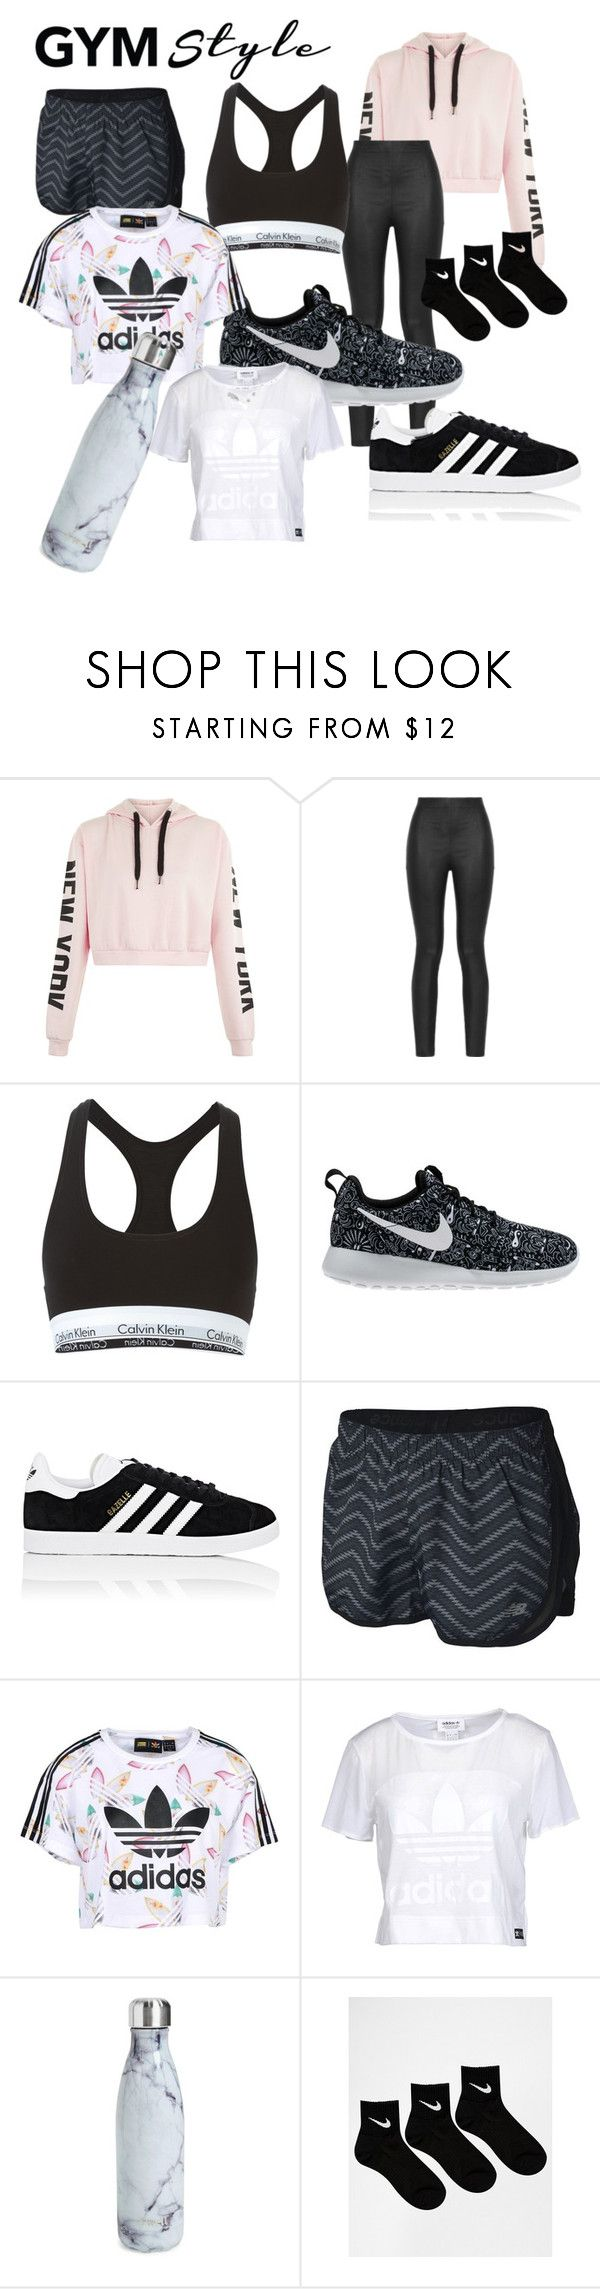 """""""Gym style"""" by phangirl-phashion ❤ liked on Polyvore featuring Armani Jeans, Calvin Klein Underwear, NIKE, adidas, New Balance, adidas Originals and S'well"""